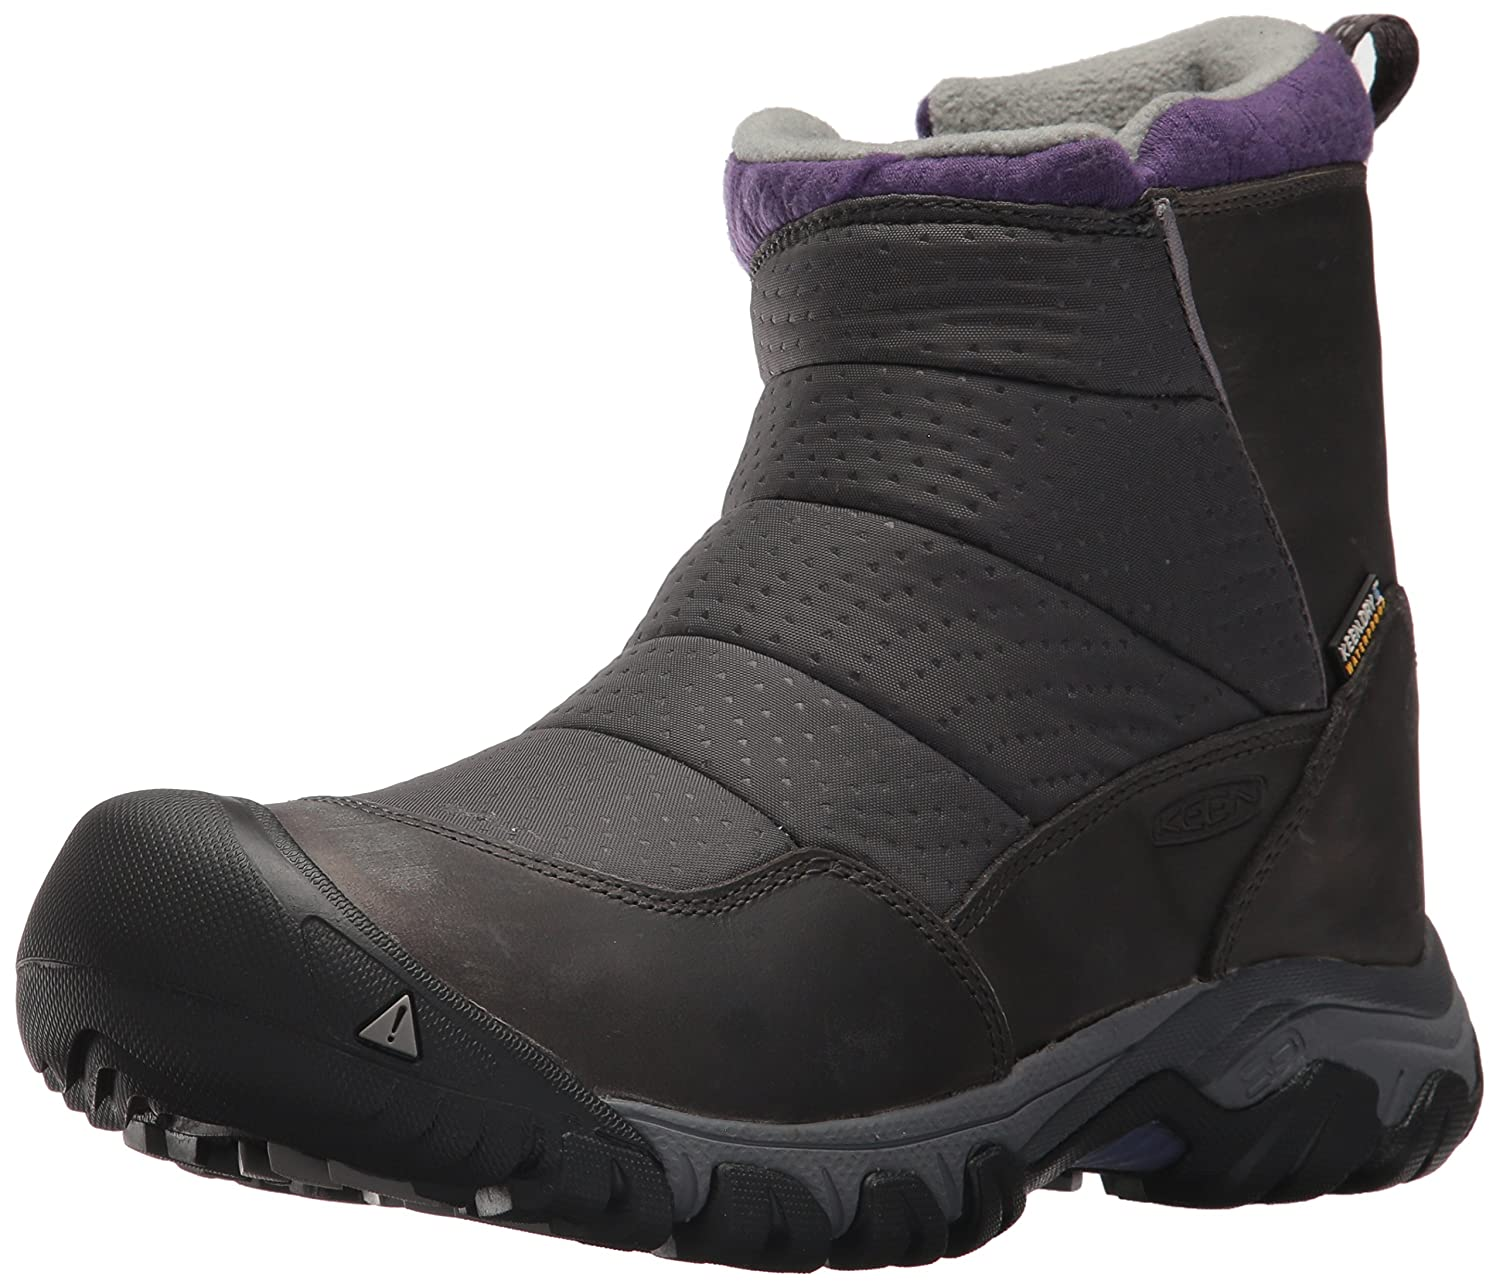 KEEN Women's Hoodoo III Low Zip-w Snow Boot B01N95PCSI 7 B(M) US|Earl Grey/Purple Plumeria